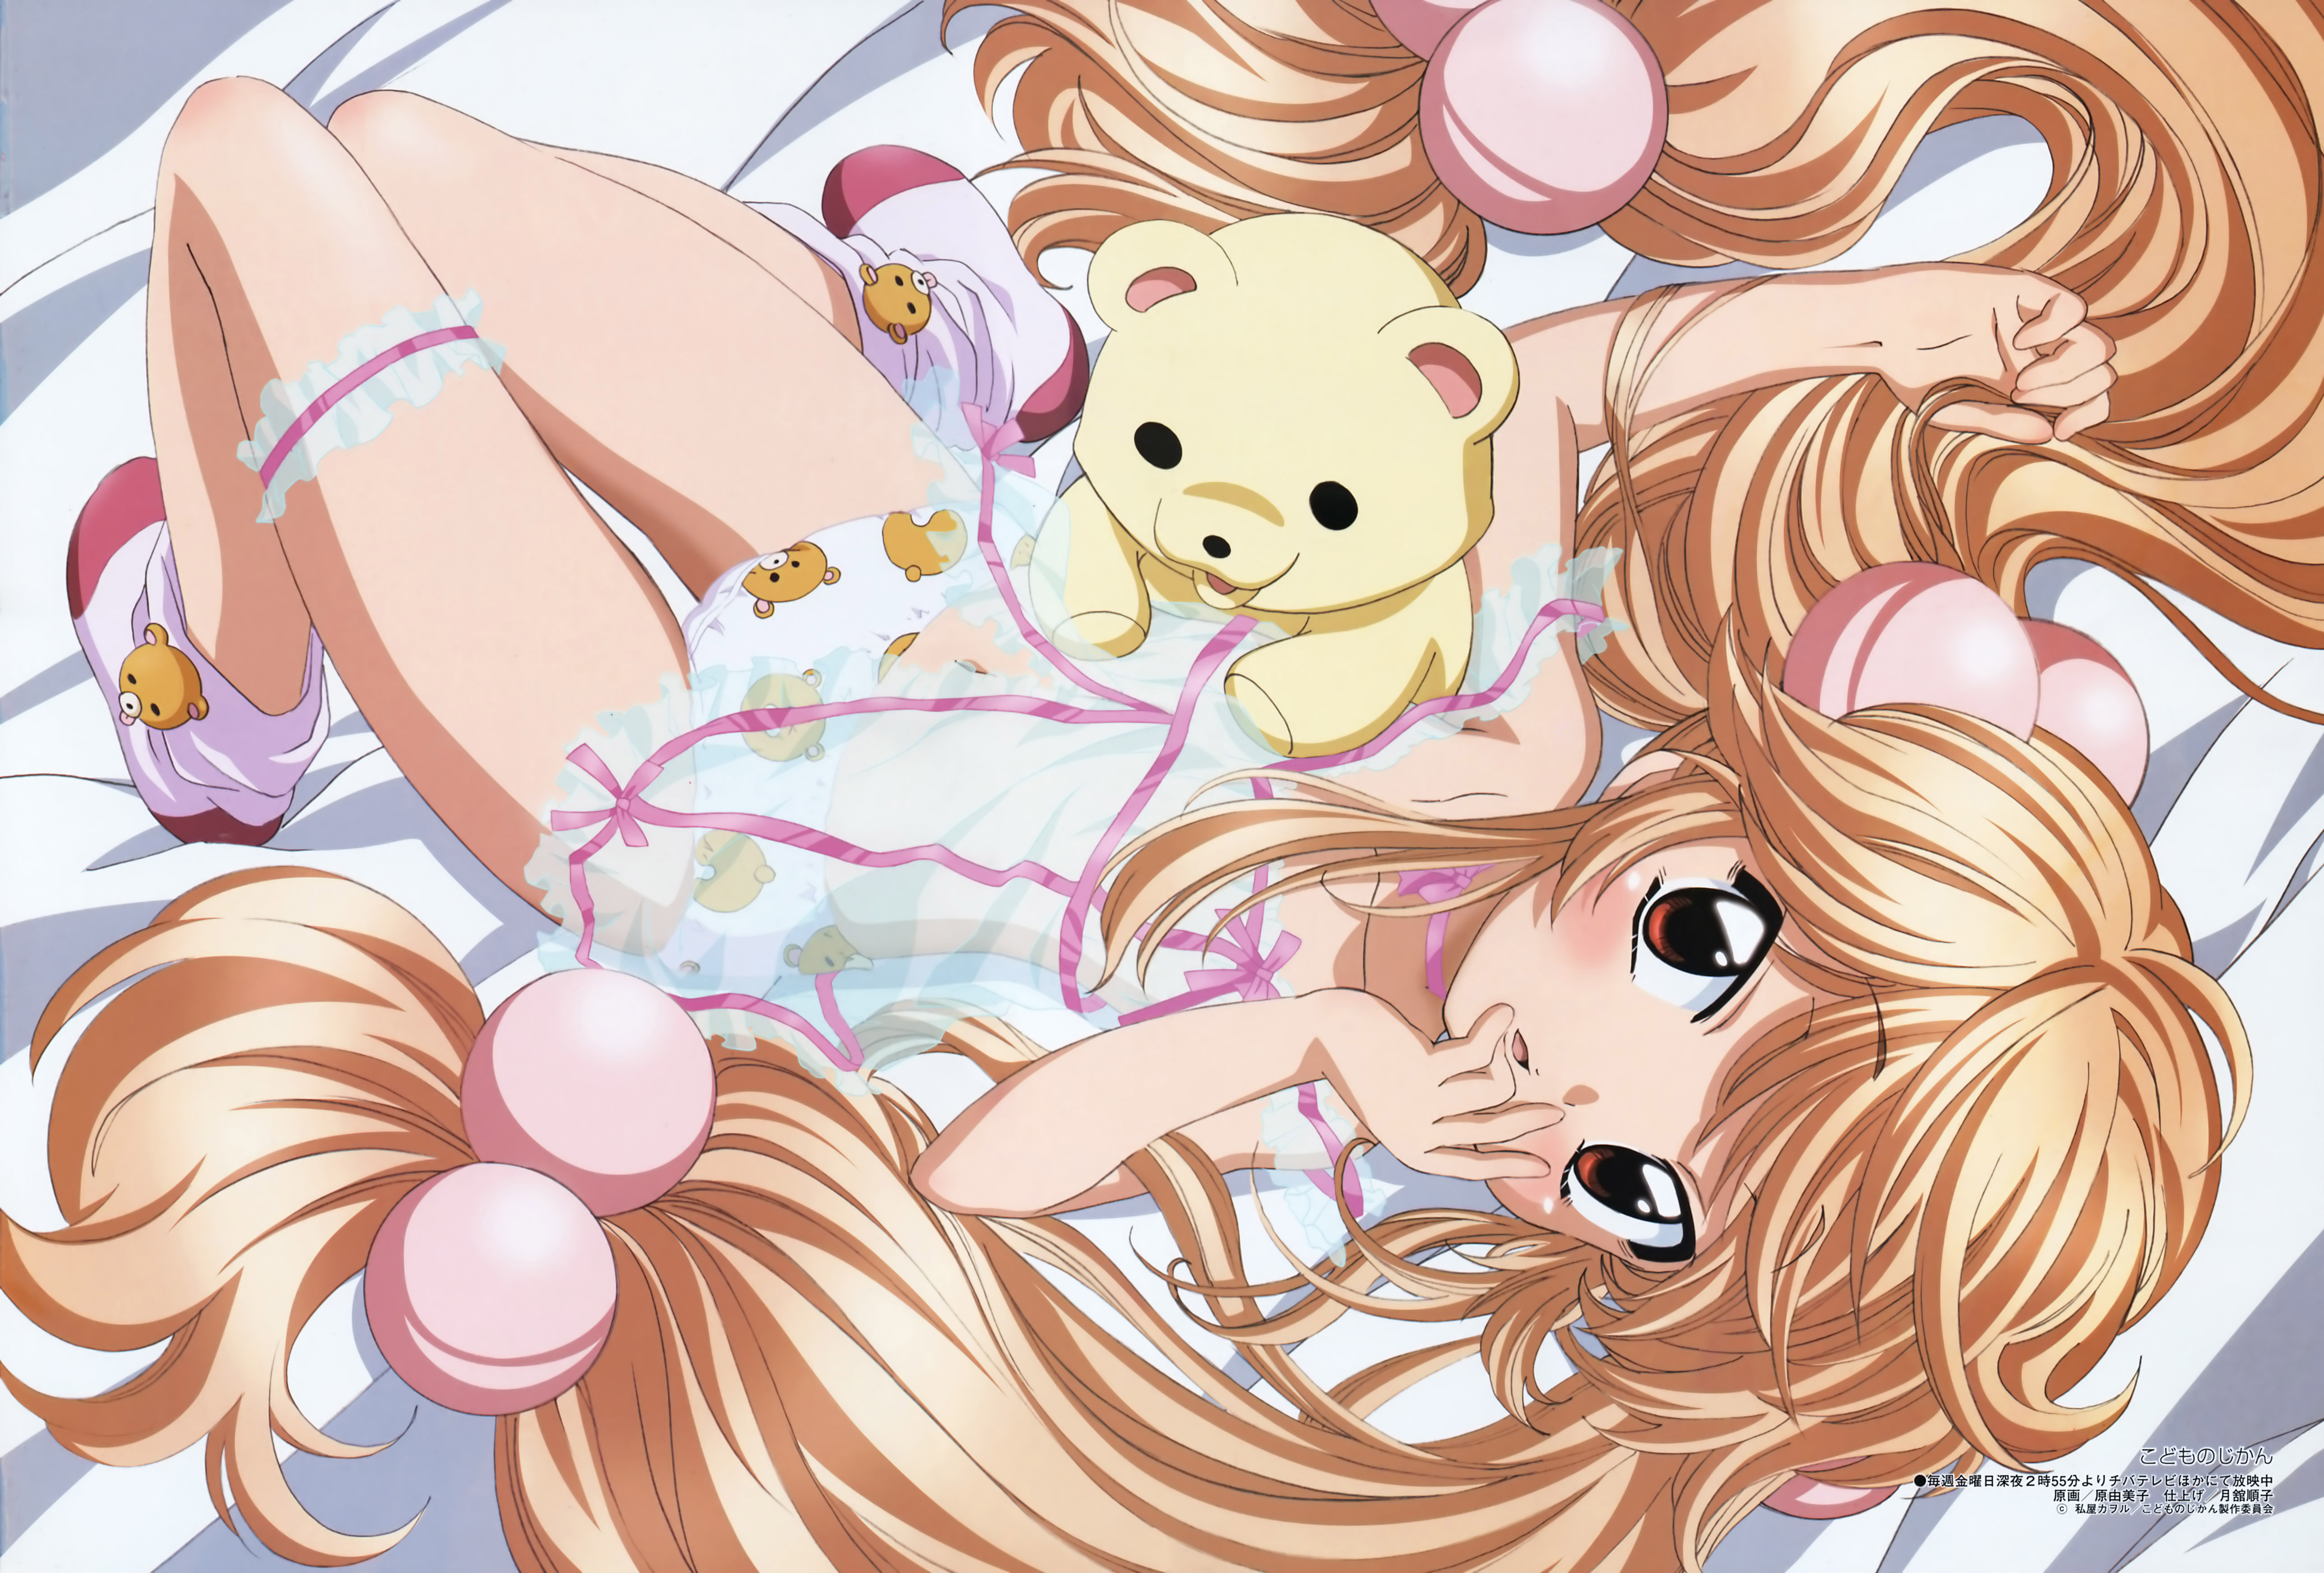 blondes kodomo no jikan HD Wallpaper